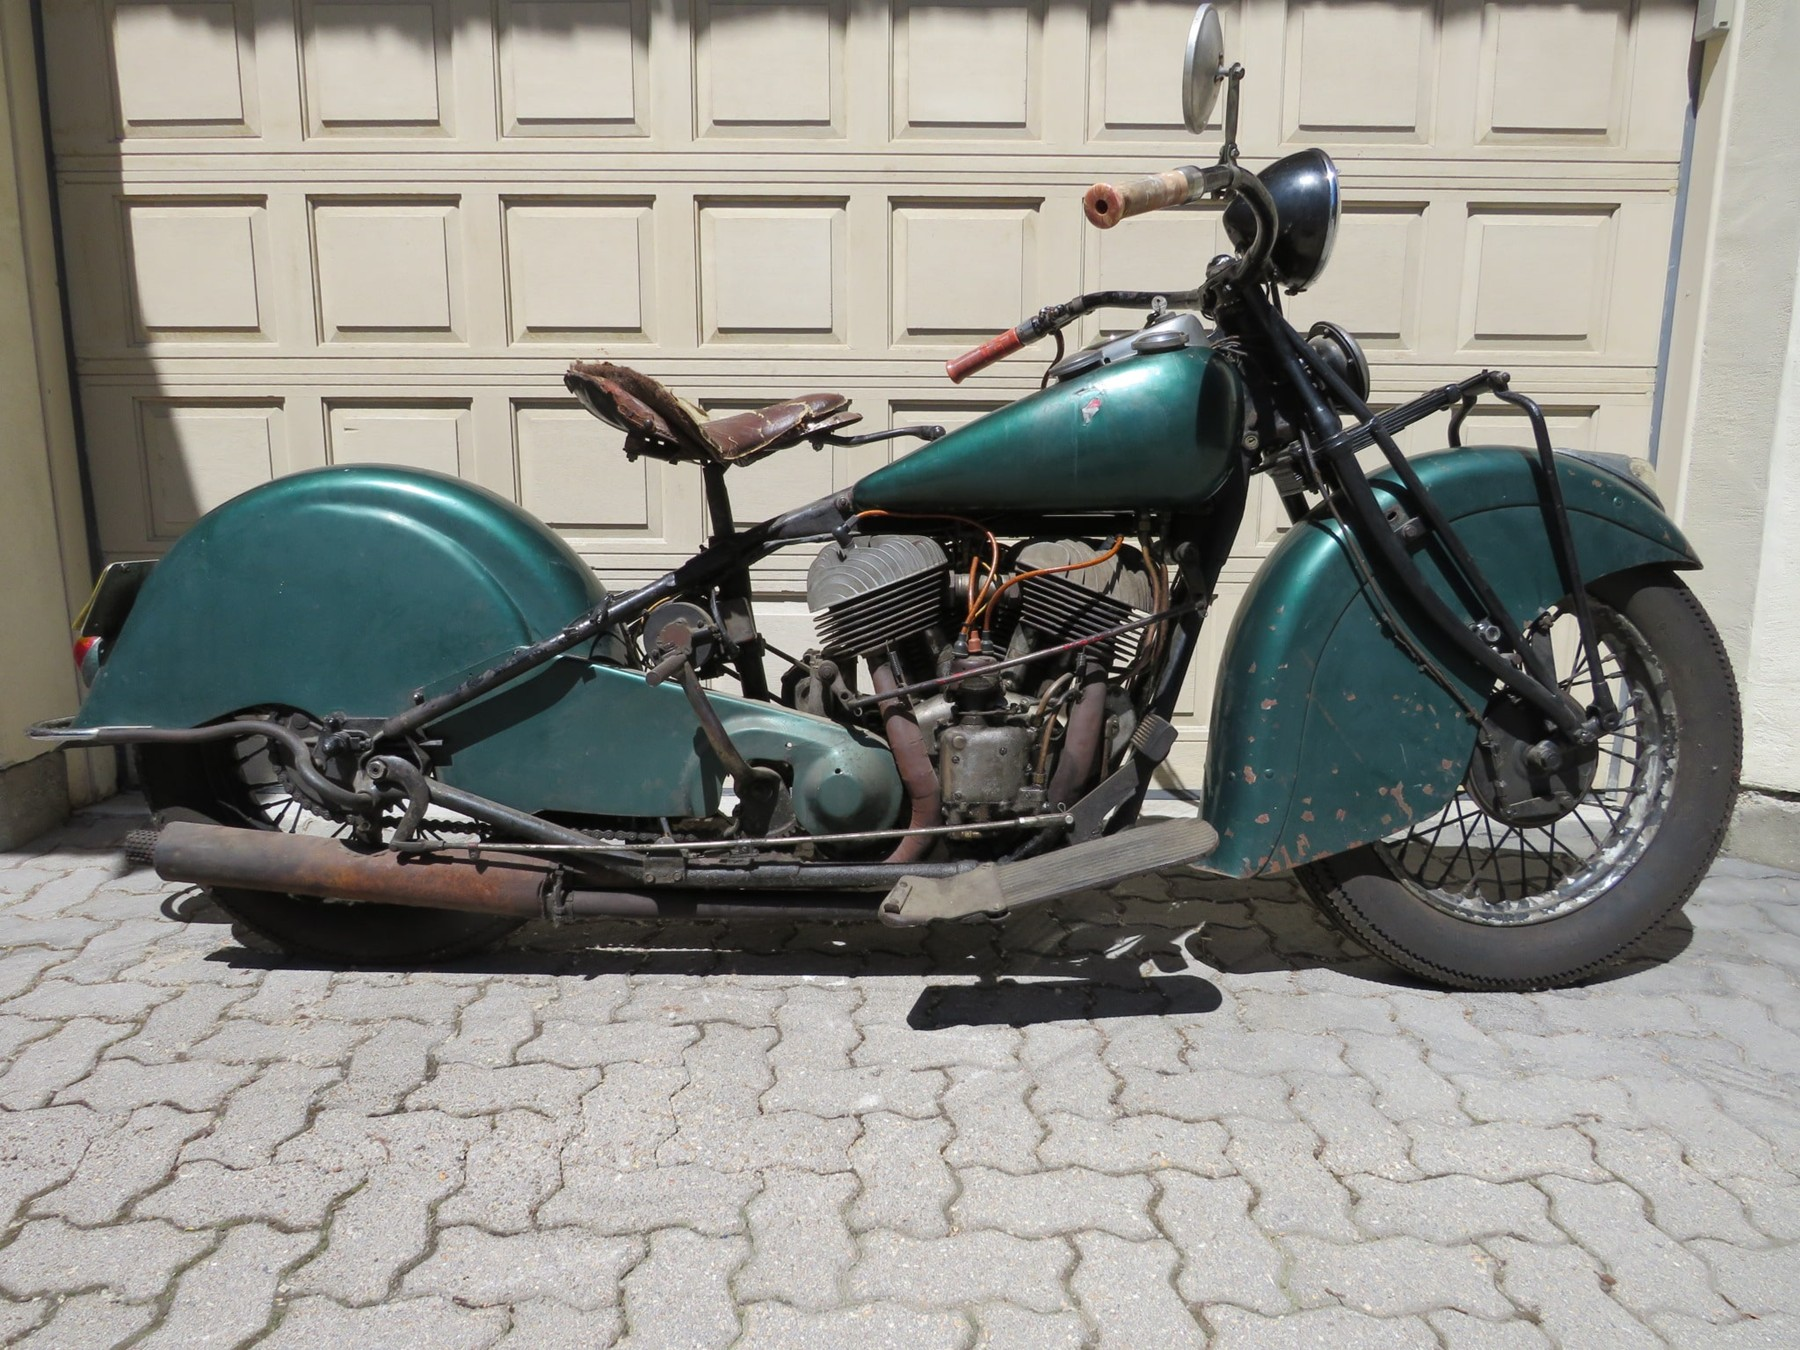 1937 Indian Chief – Castoro Col – SOLD!